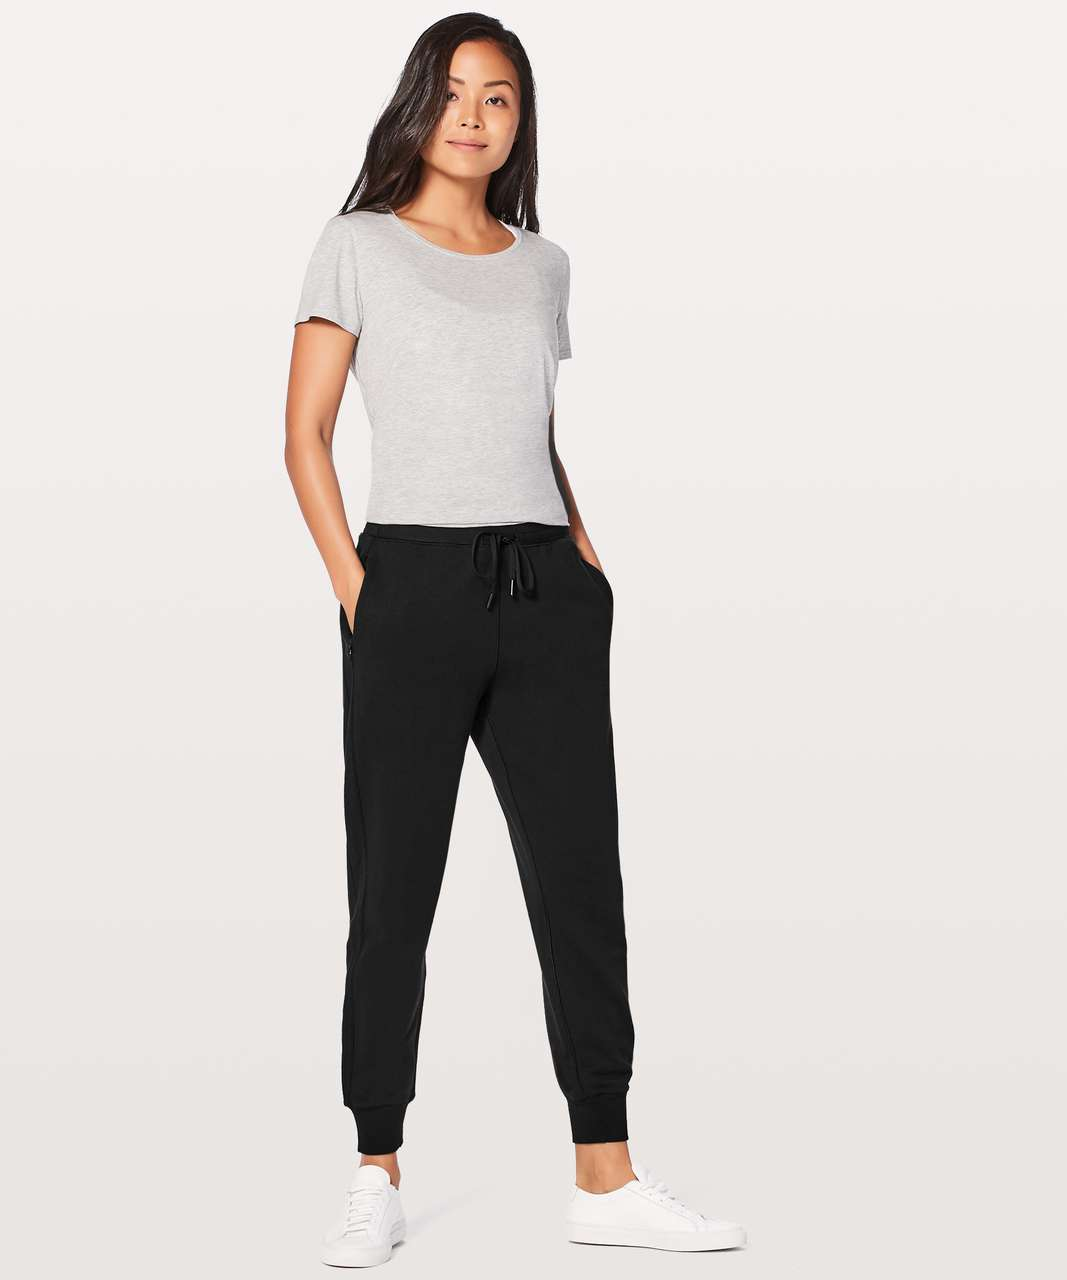 """Lululemon Cool & Collected Jogger *28"""" - Black"""